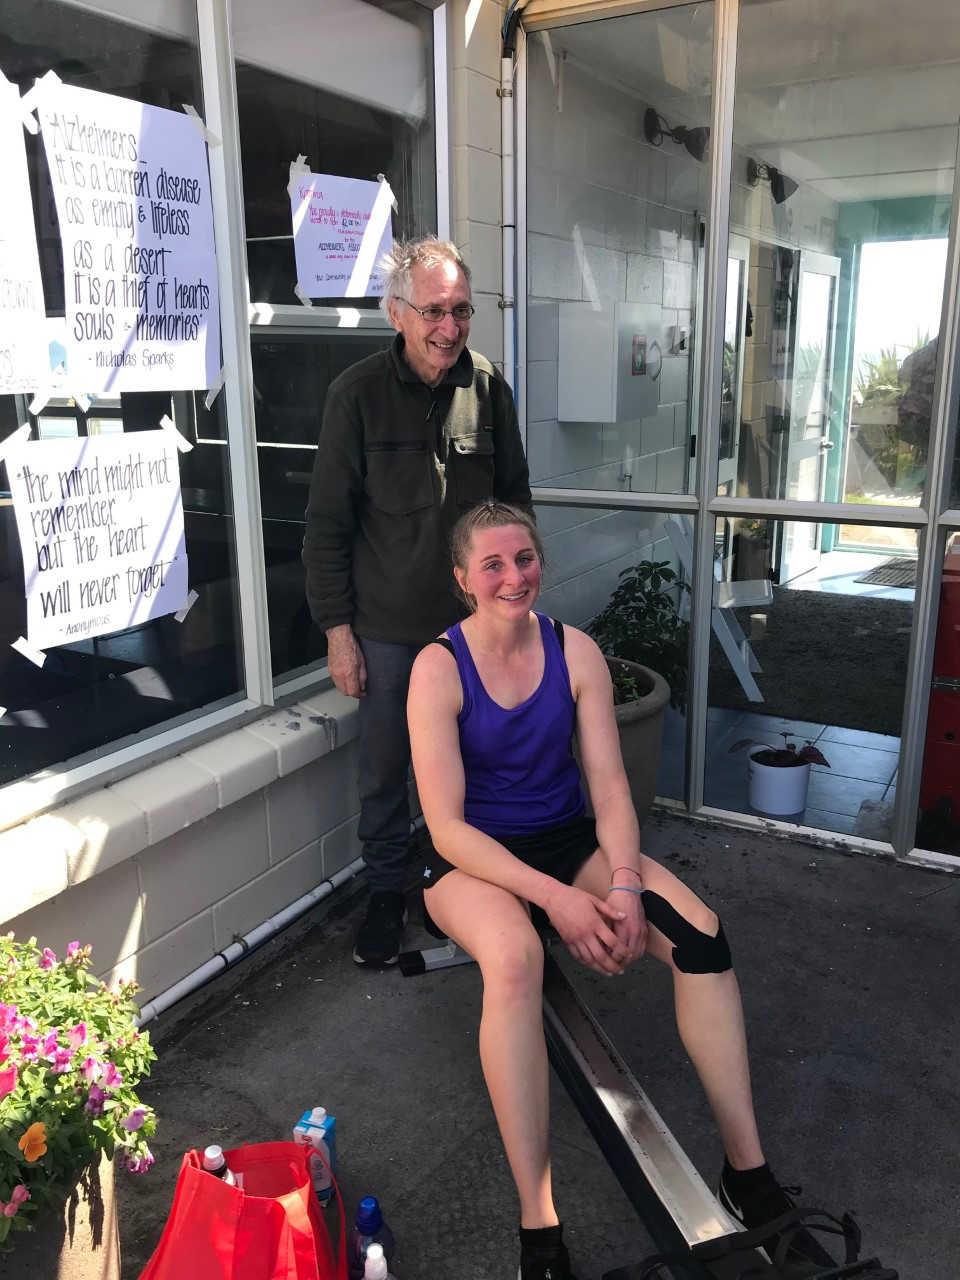 Katrina on the rowing machine with her Dad standing beside her